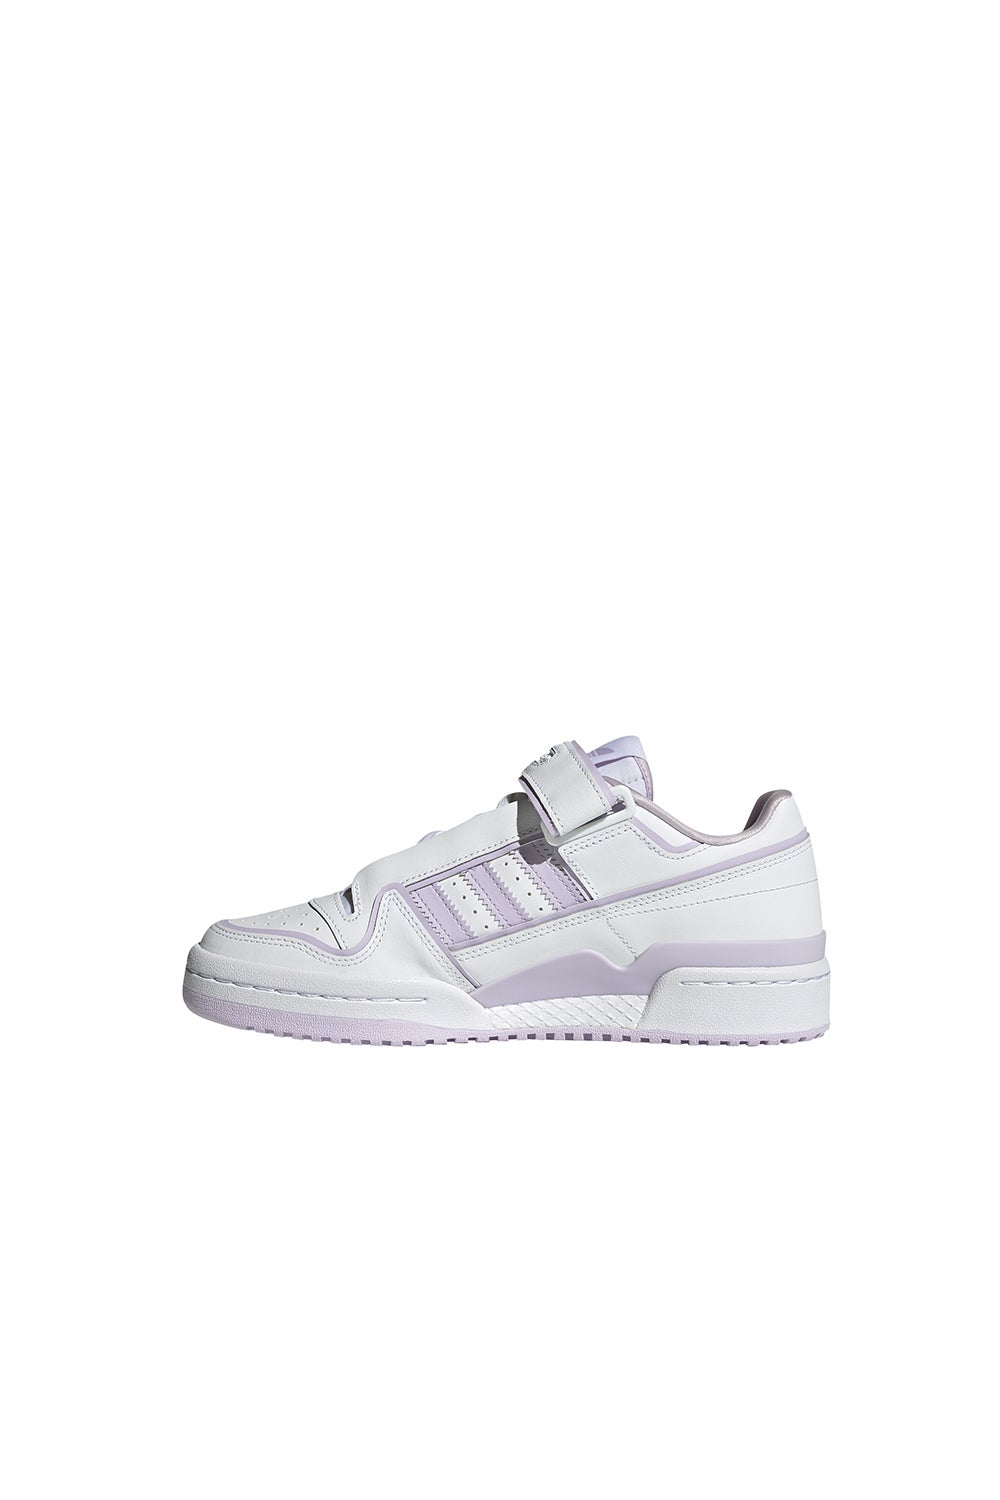 adidas Forum Plus Cloud White/Purple Tint